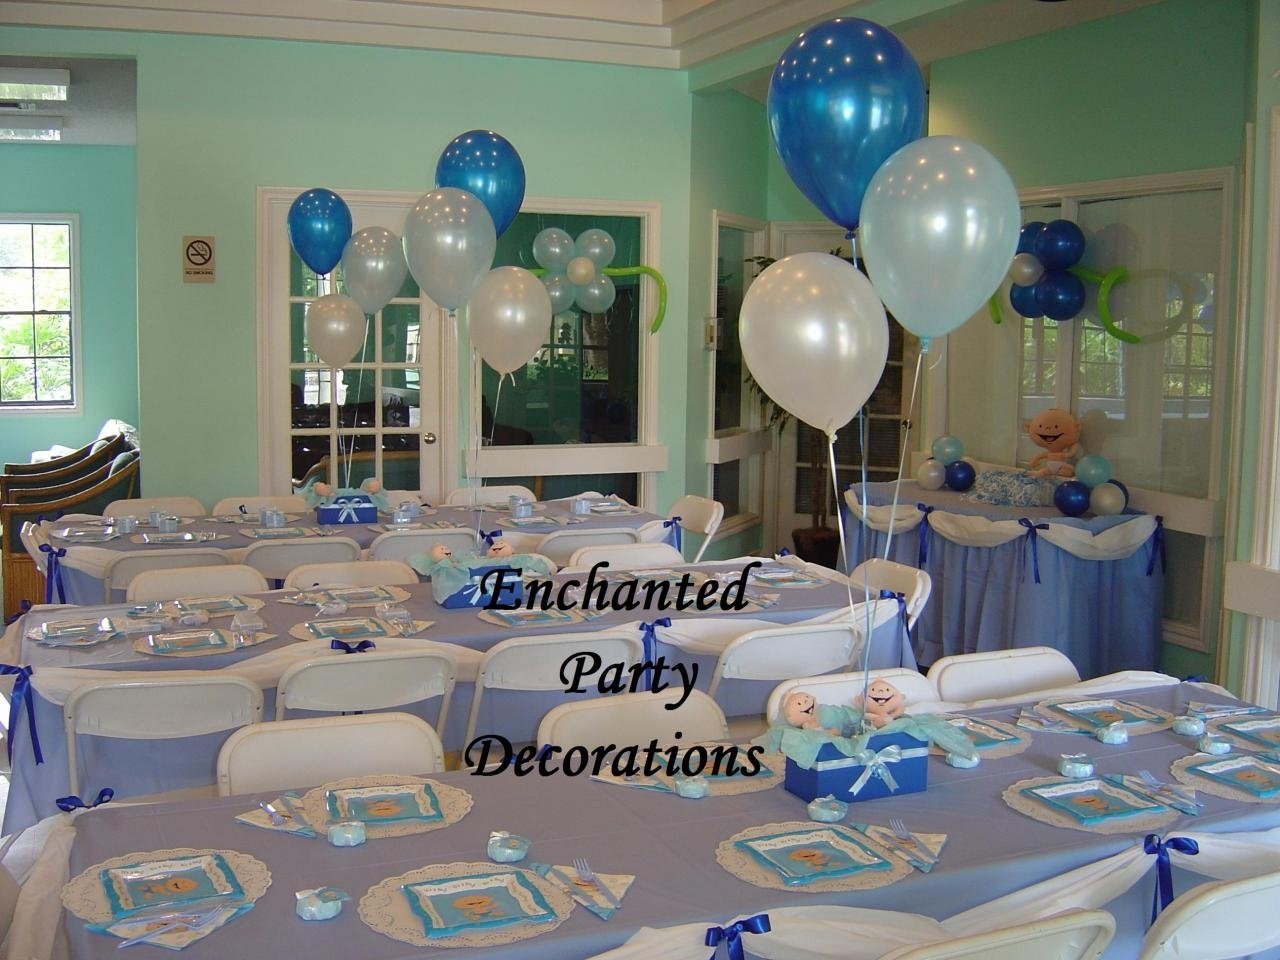 10 Trendy Baby Shower Decorations Ideas For Boys diy baby shower decoration ideas for a boy tags baby shower 2020